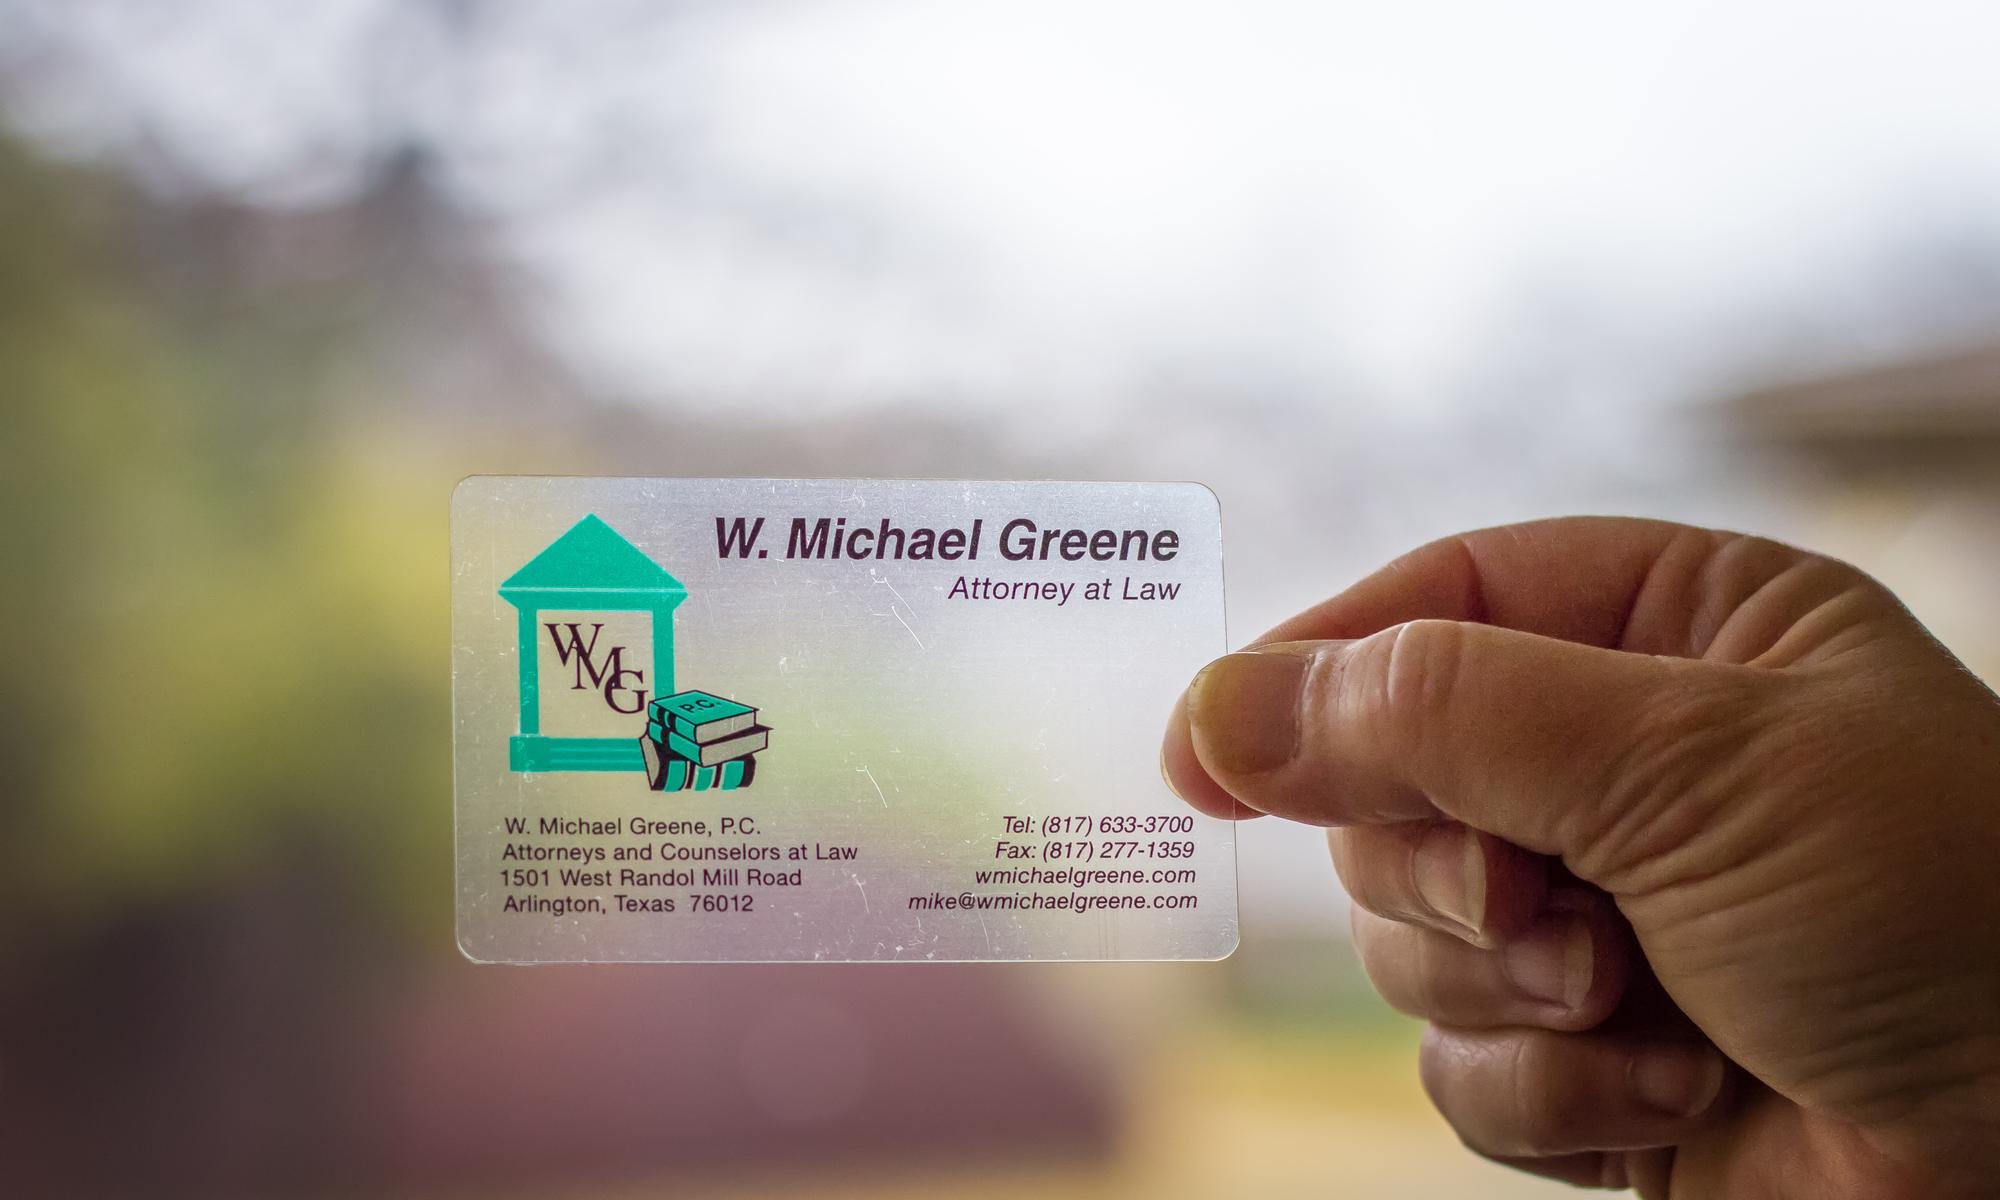 W Michael Greene's business card held up to the light